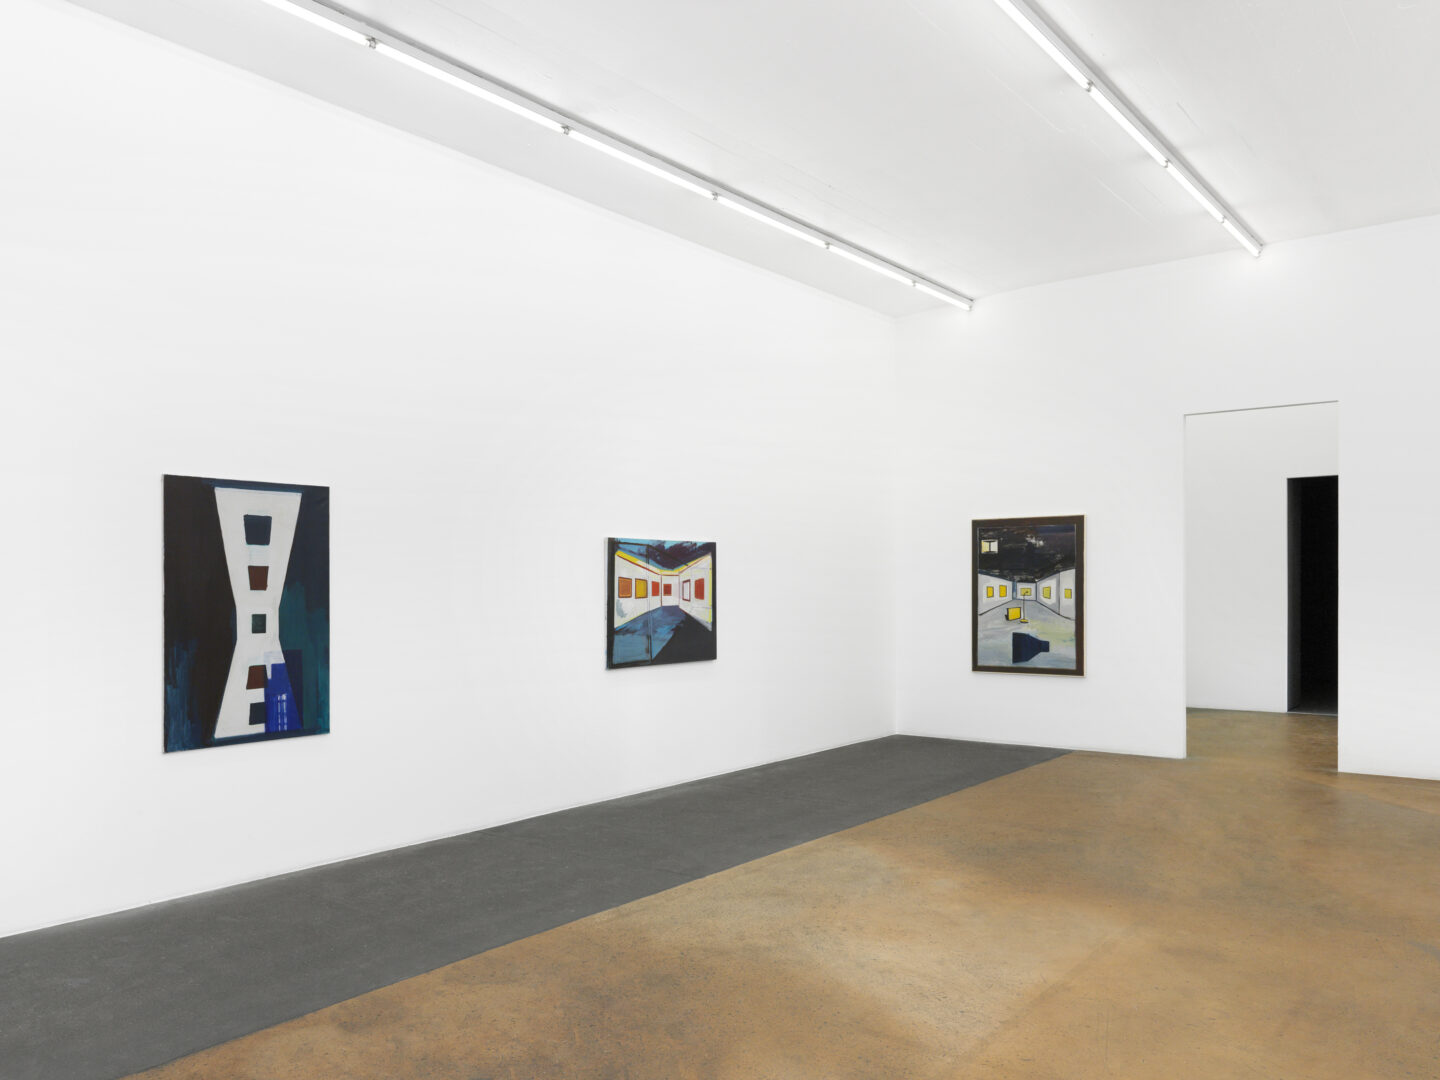 Exhibition View René Daniëls Soloshow «Fragments from an Unfinished Novel» at MAMCO, Geneva, 2019 / Photo: Annik Wetter / Courtesy: the artist and MAMCO, Geneva